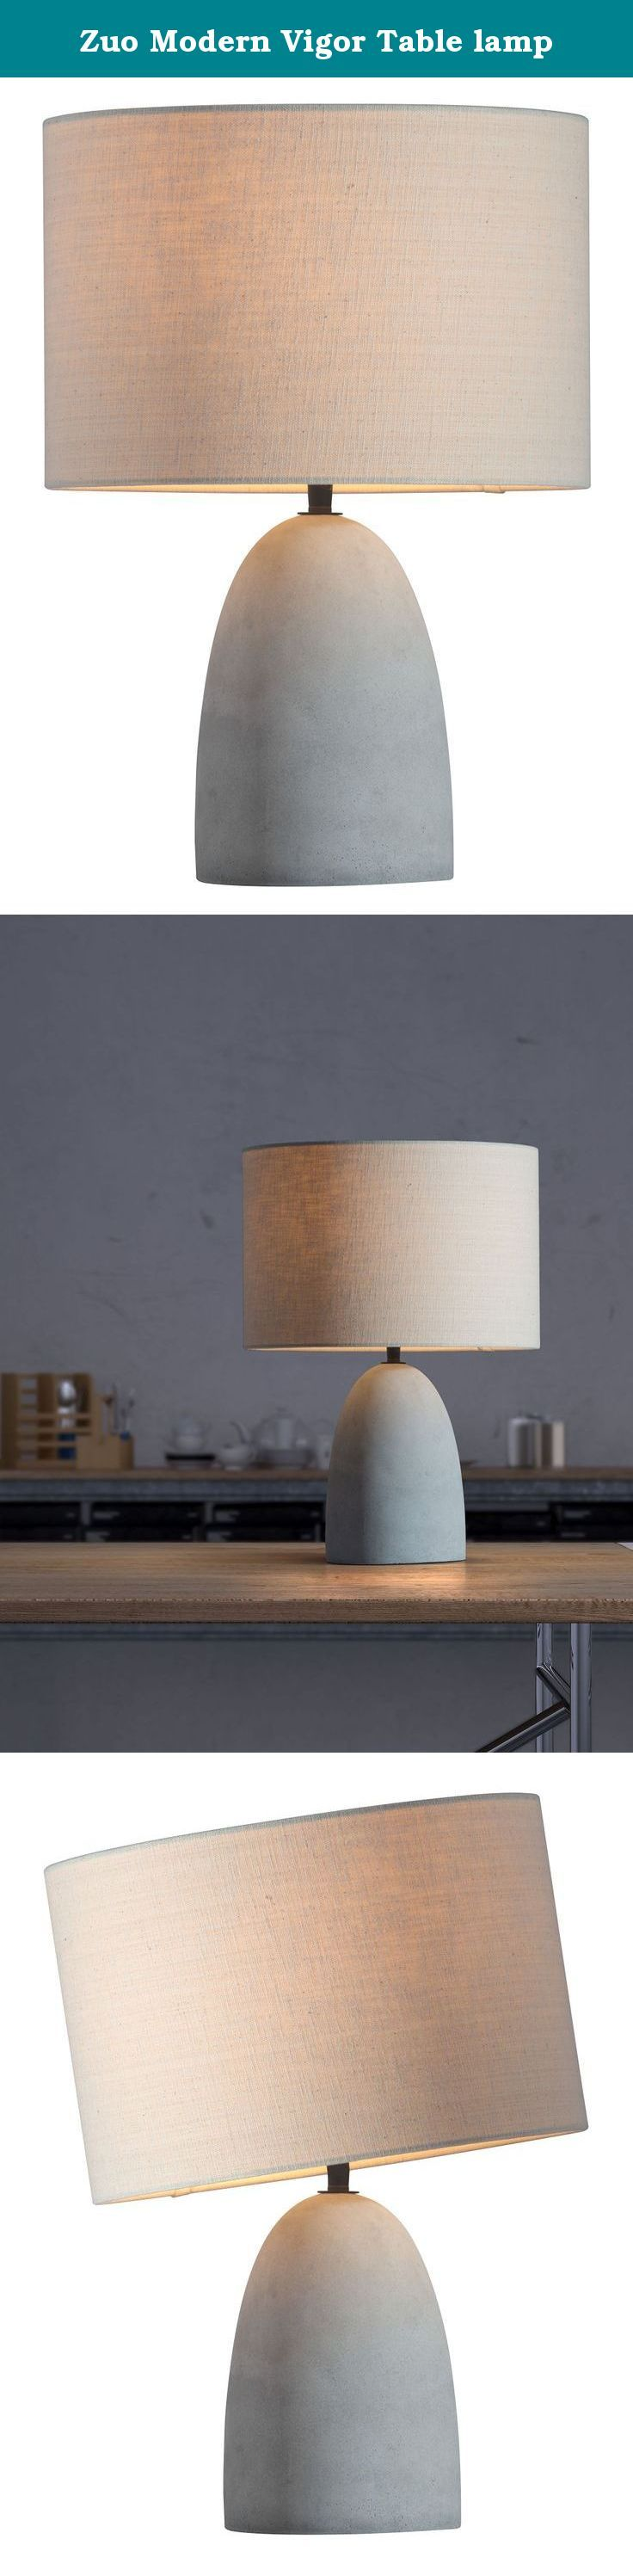 Zuo Modern Vigor Table lamp. Vigor table lamp has contemporary styling with warm beige shade and a soft grey faux concrete base. Add to bedrooms or offices, lobby's or hotel guest rooms for the perfect touch of warmth sincerity. Bulbs not included, matt watt 60 W E26 type A19 frosted white.